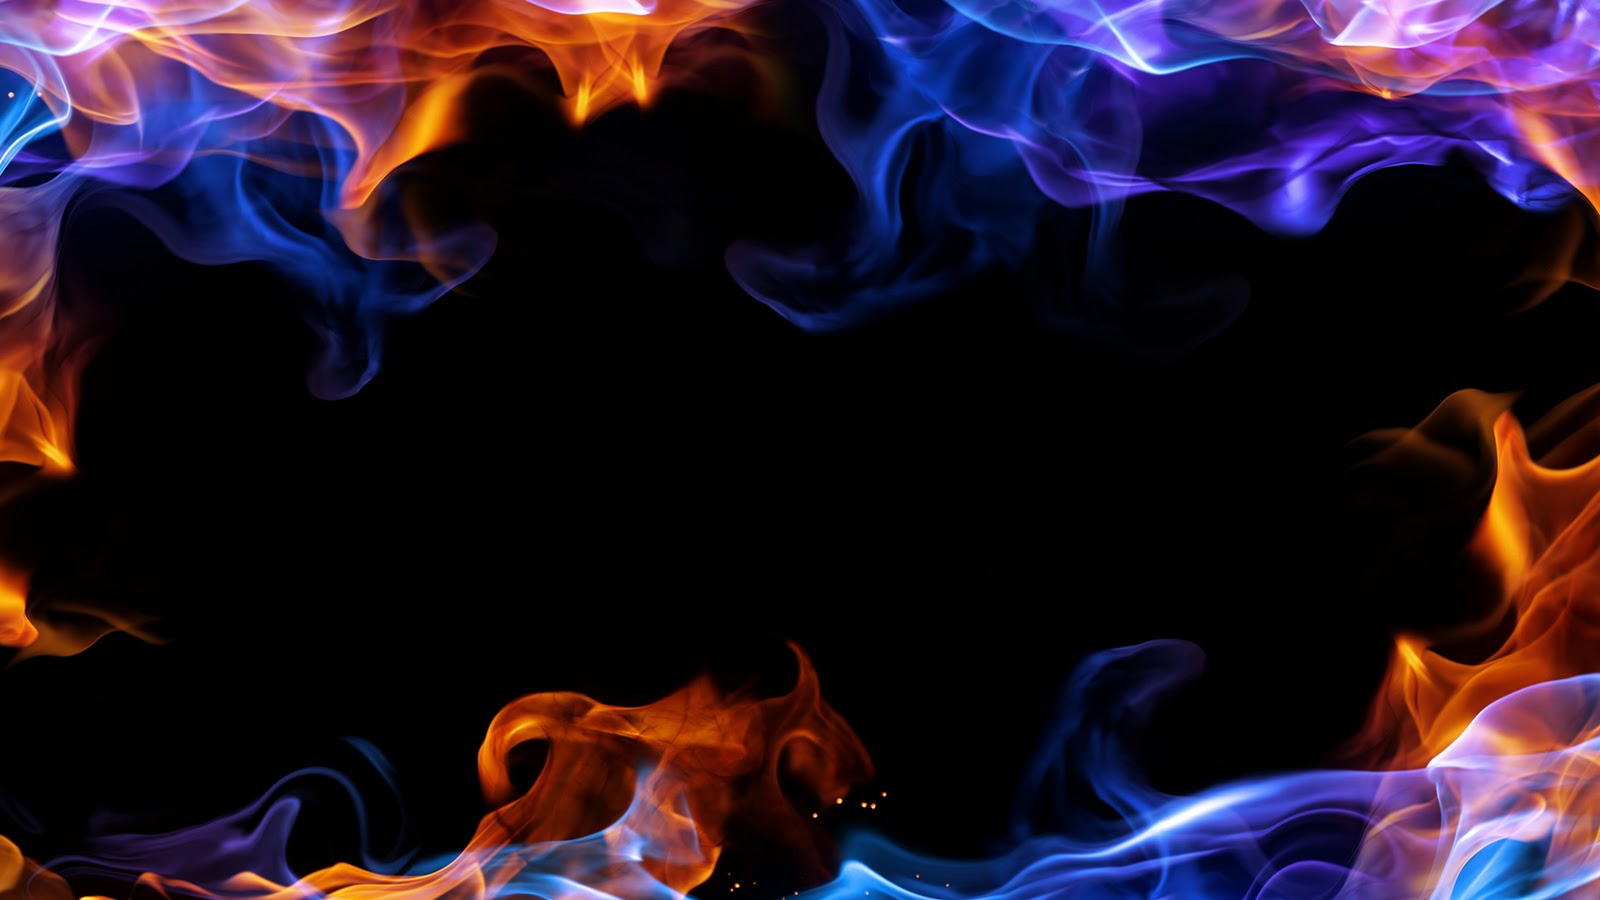 hd wallpapers desktop fire - photo #33